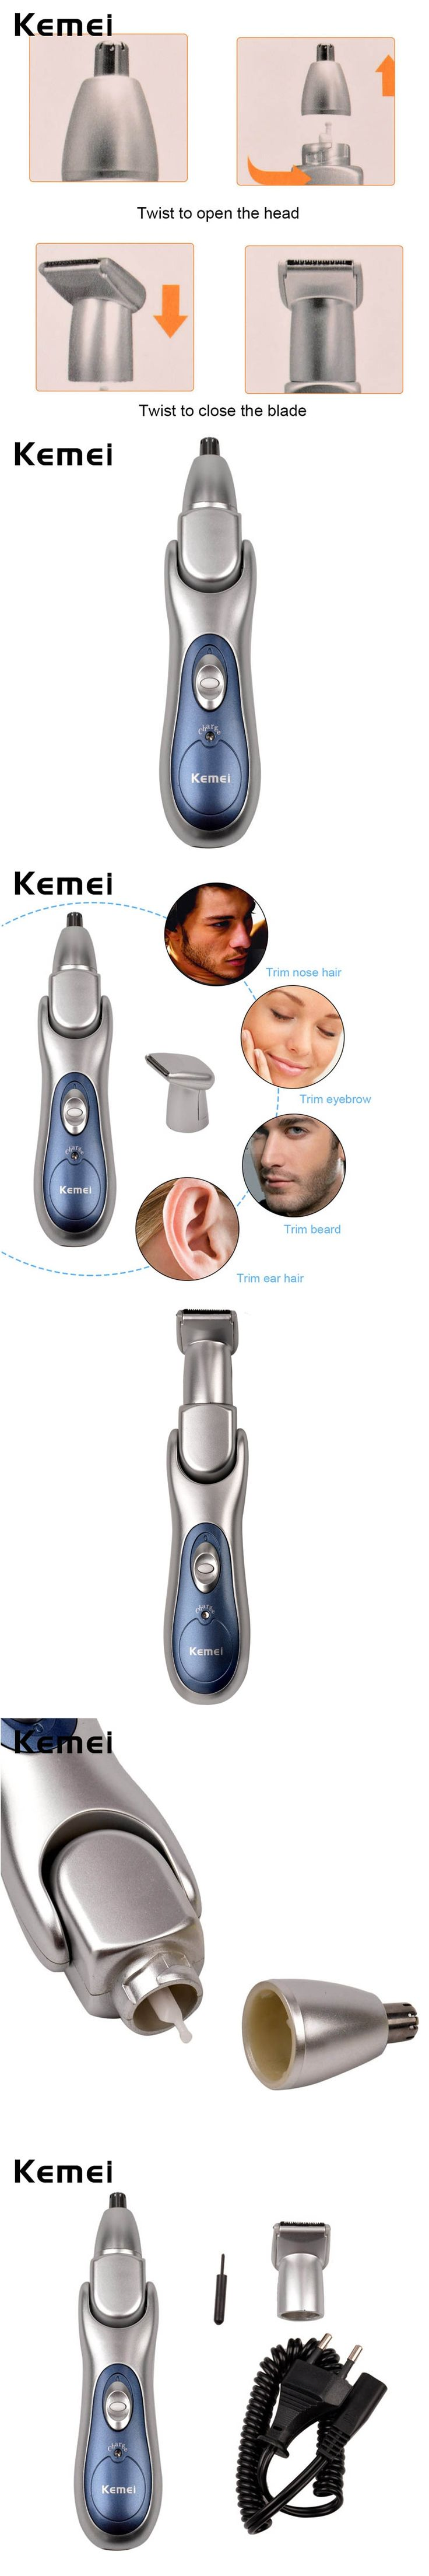 2-In-1 Nose/Ear Hair Removal Electric Rechargeable Face Care Shaving Trimmer for Temple Eyebrow Beard RCS96SQ-G00